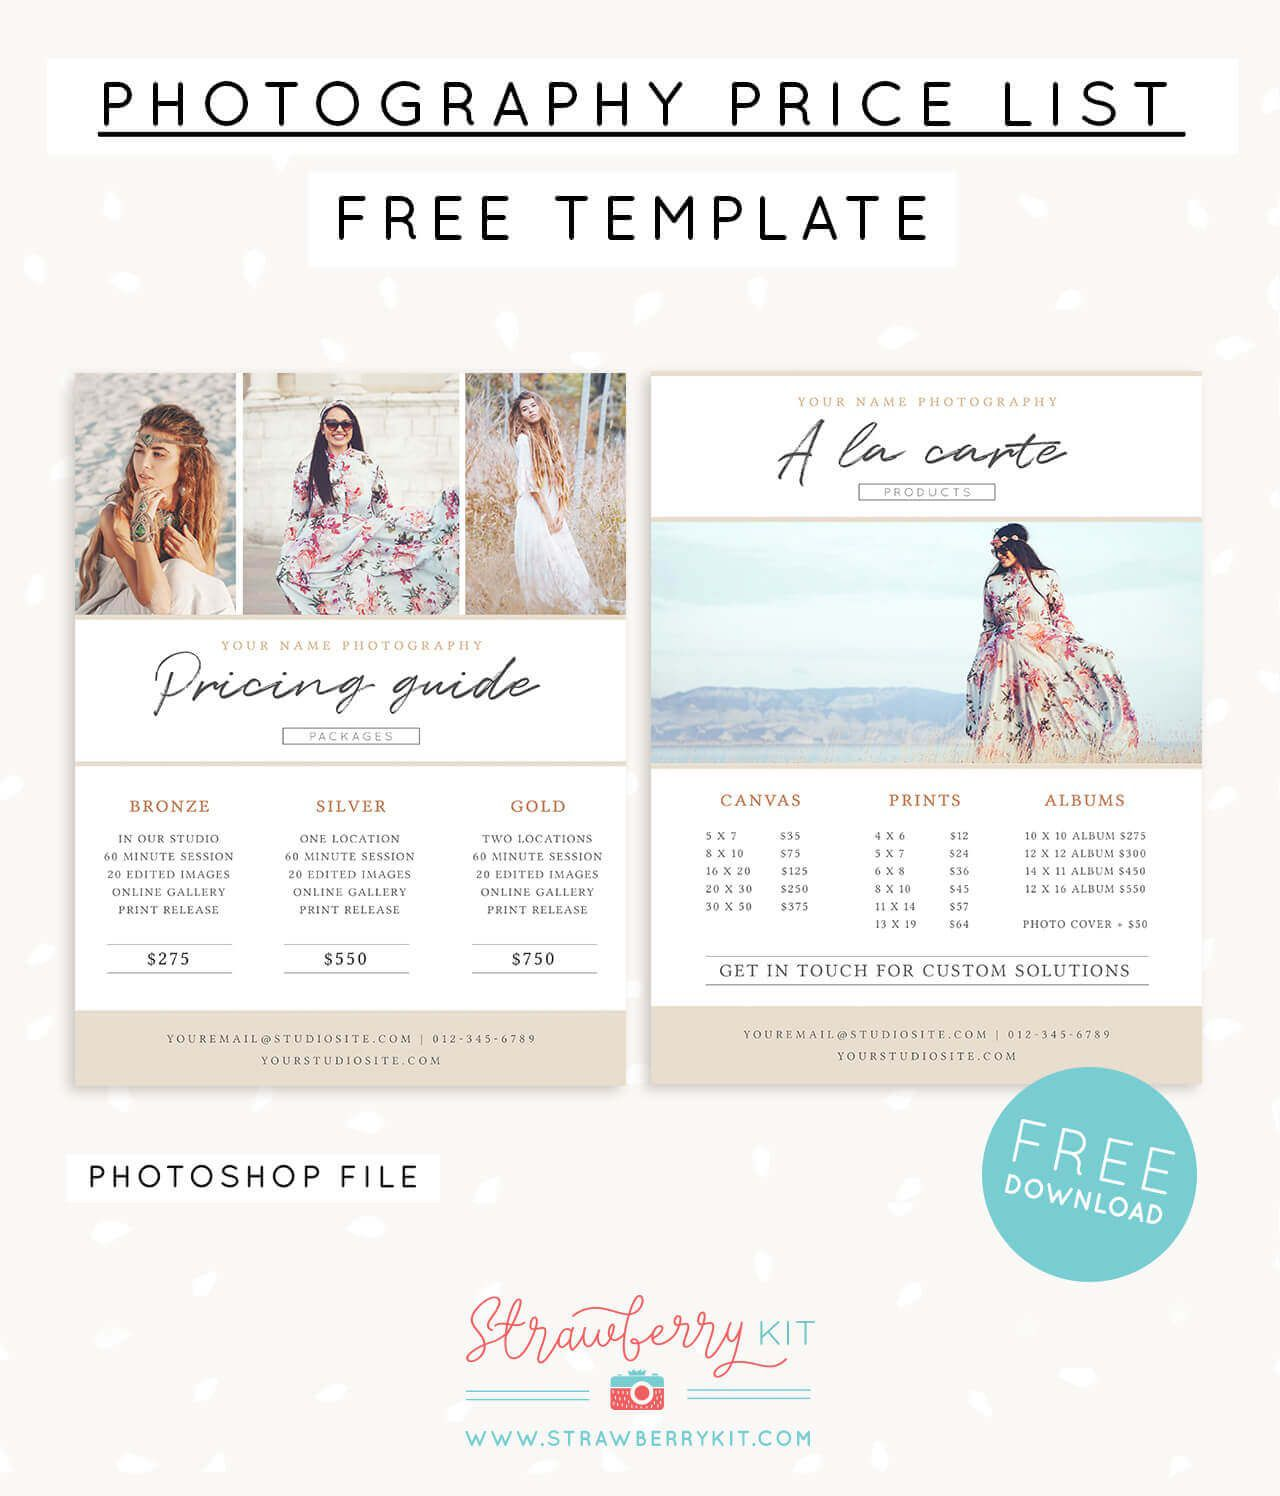 006 Unusual Free Photography Package Template Sample  PricingFull